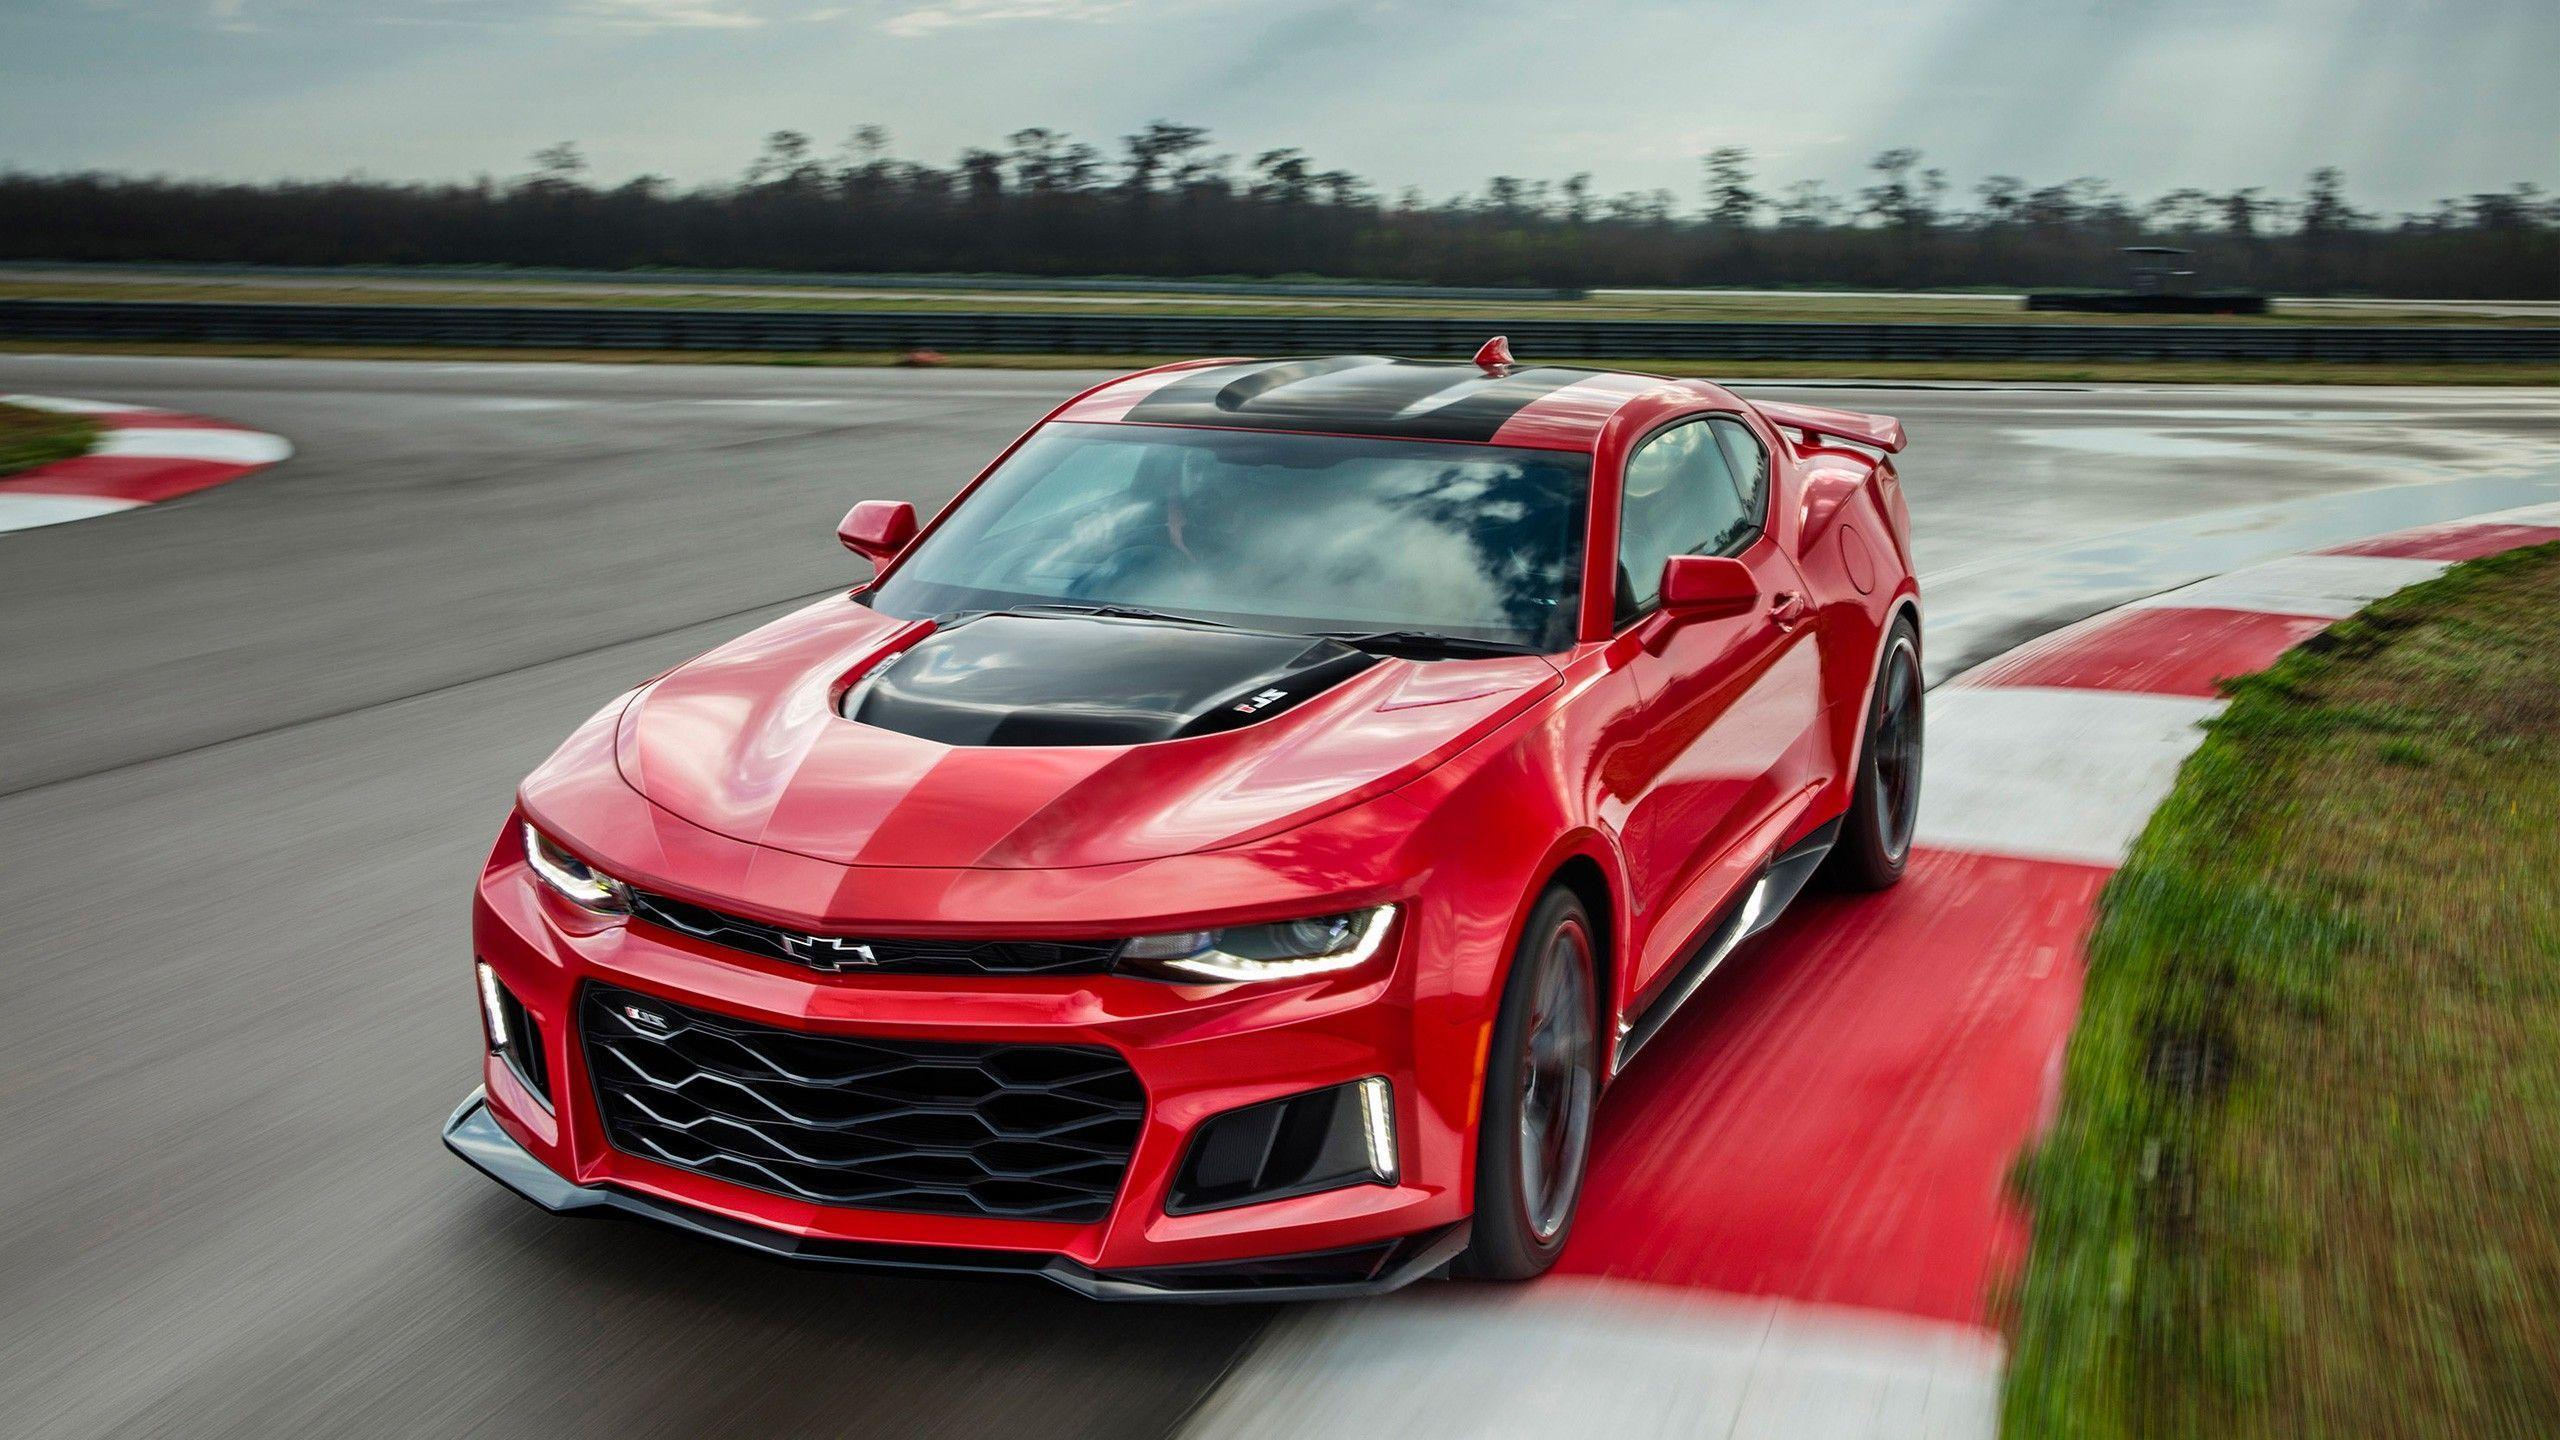 2016 Camaro Zl1 Wallpapers 2560x1440